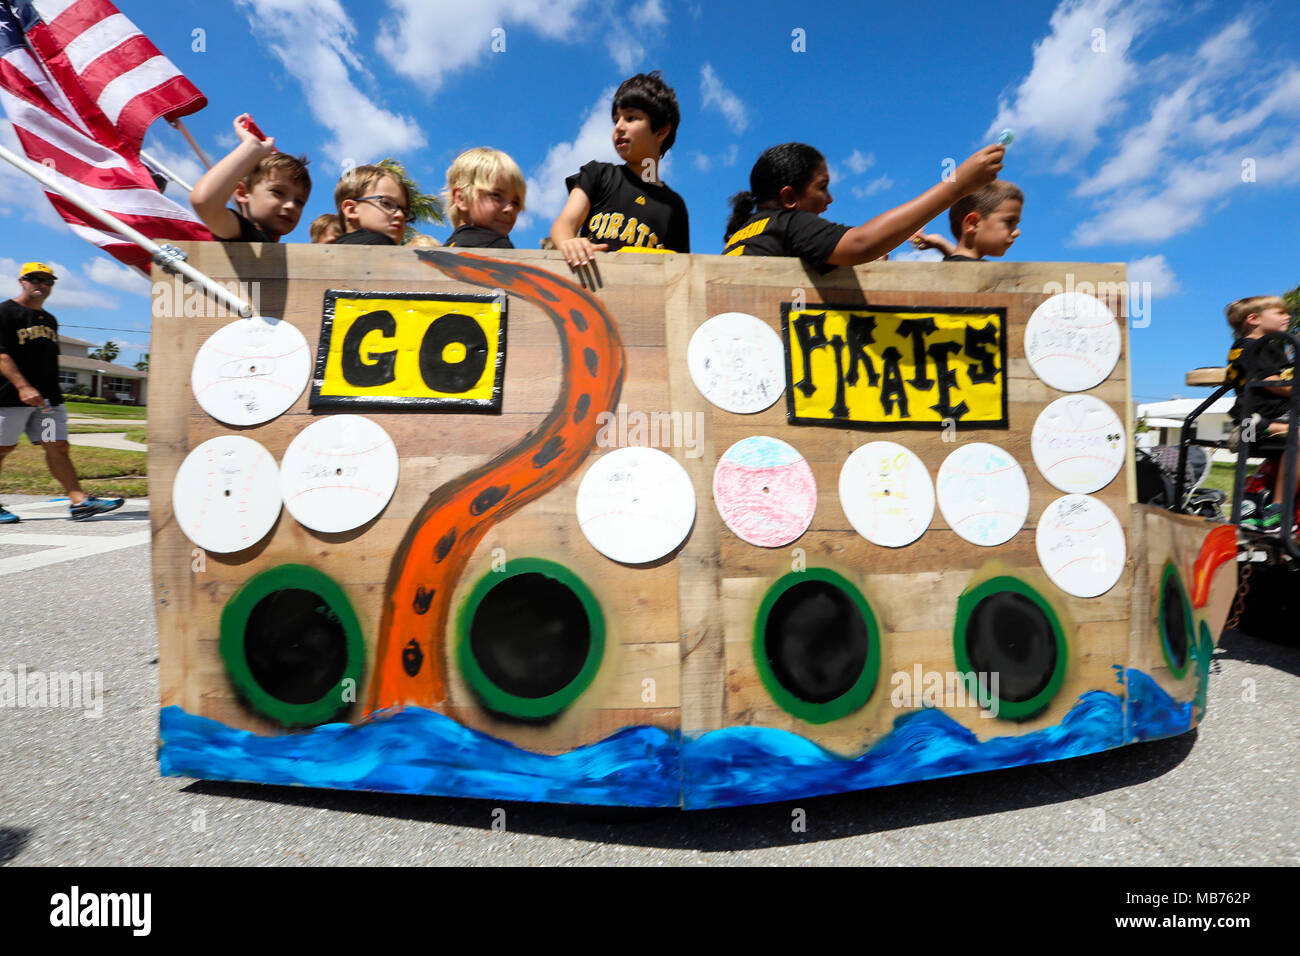 Florida, USA. 7th Apr, 2018. The Pirates Little League baseball team's float travels north on Eastwind Drive during North Palm Beach Heritage Day parade Saturday, April 7, 2018. The Parade featured bands, civic groups, clubs and organizations from the area. It traveled from North Palm Beach Village Hall north on Eastwind Drive, west on Lighthouse Drive, and south on Anchorage Drive, to end at Anchorage Park. The Heritage Festival held at Anchorage Park featured a business expo, carnival rides, food and drinks.games, musical entertainment, a cornhole tournament, and more. (Credit Image: © B - Stock Image